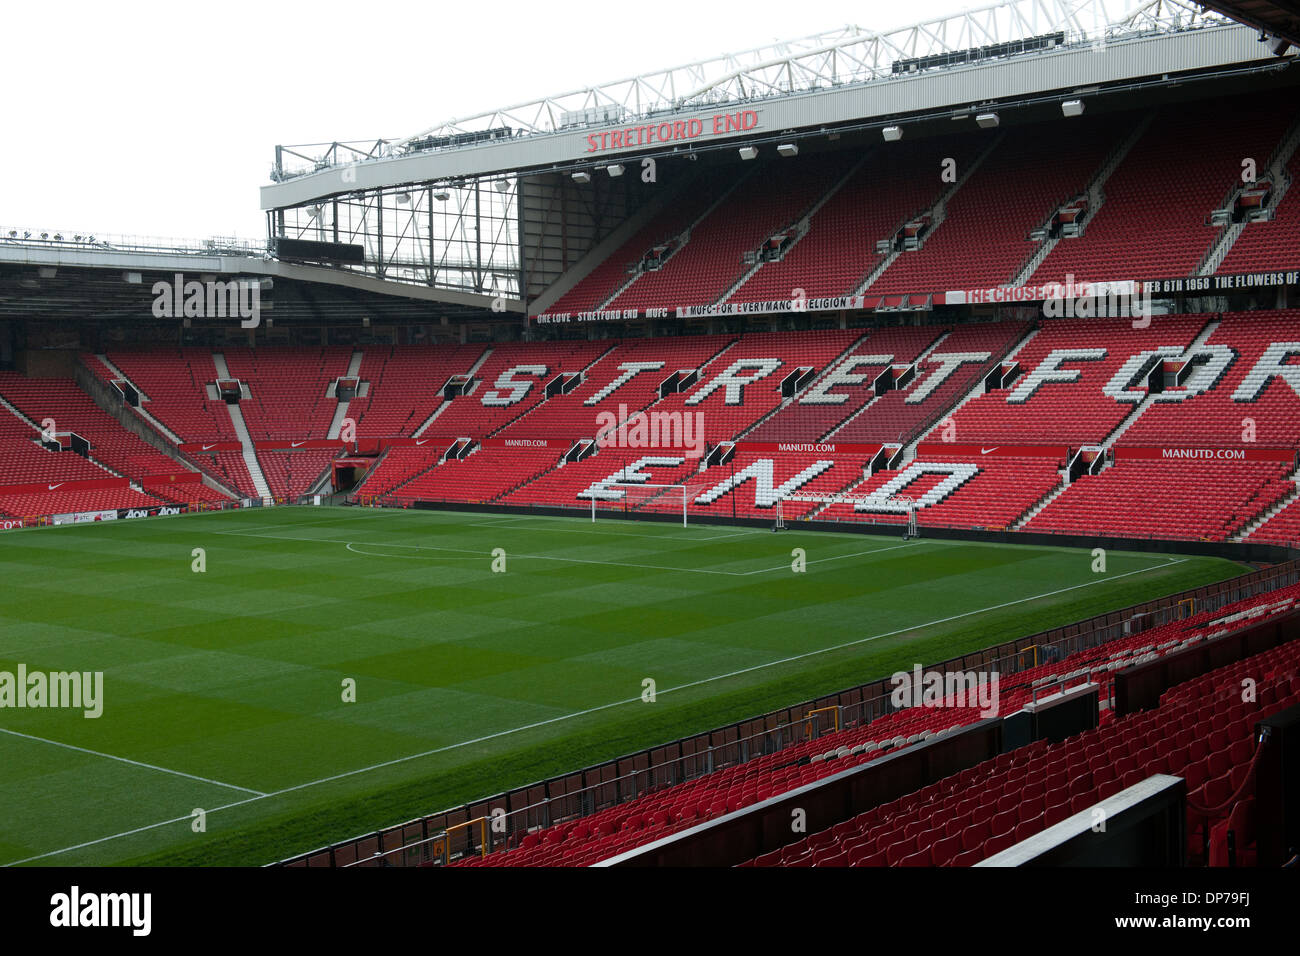 Old Trafford, home of Manchester United Football Club, Manchester, England, UK.; view of the Streford End Stand. - Stock Image